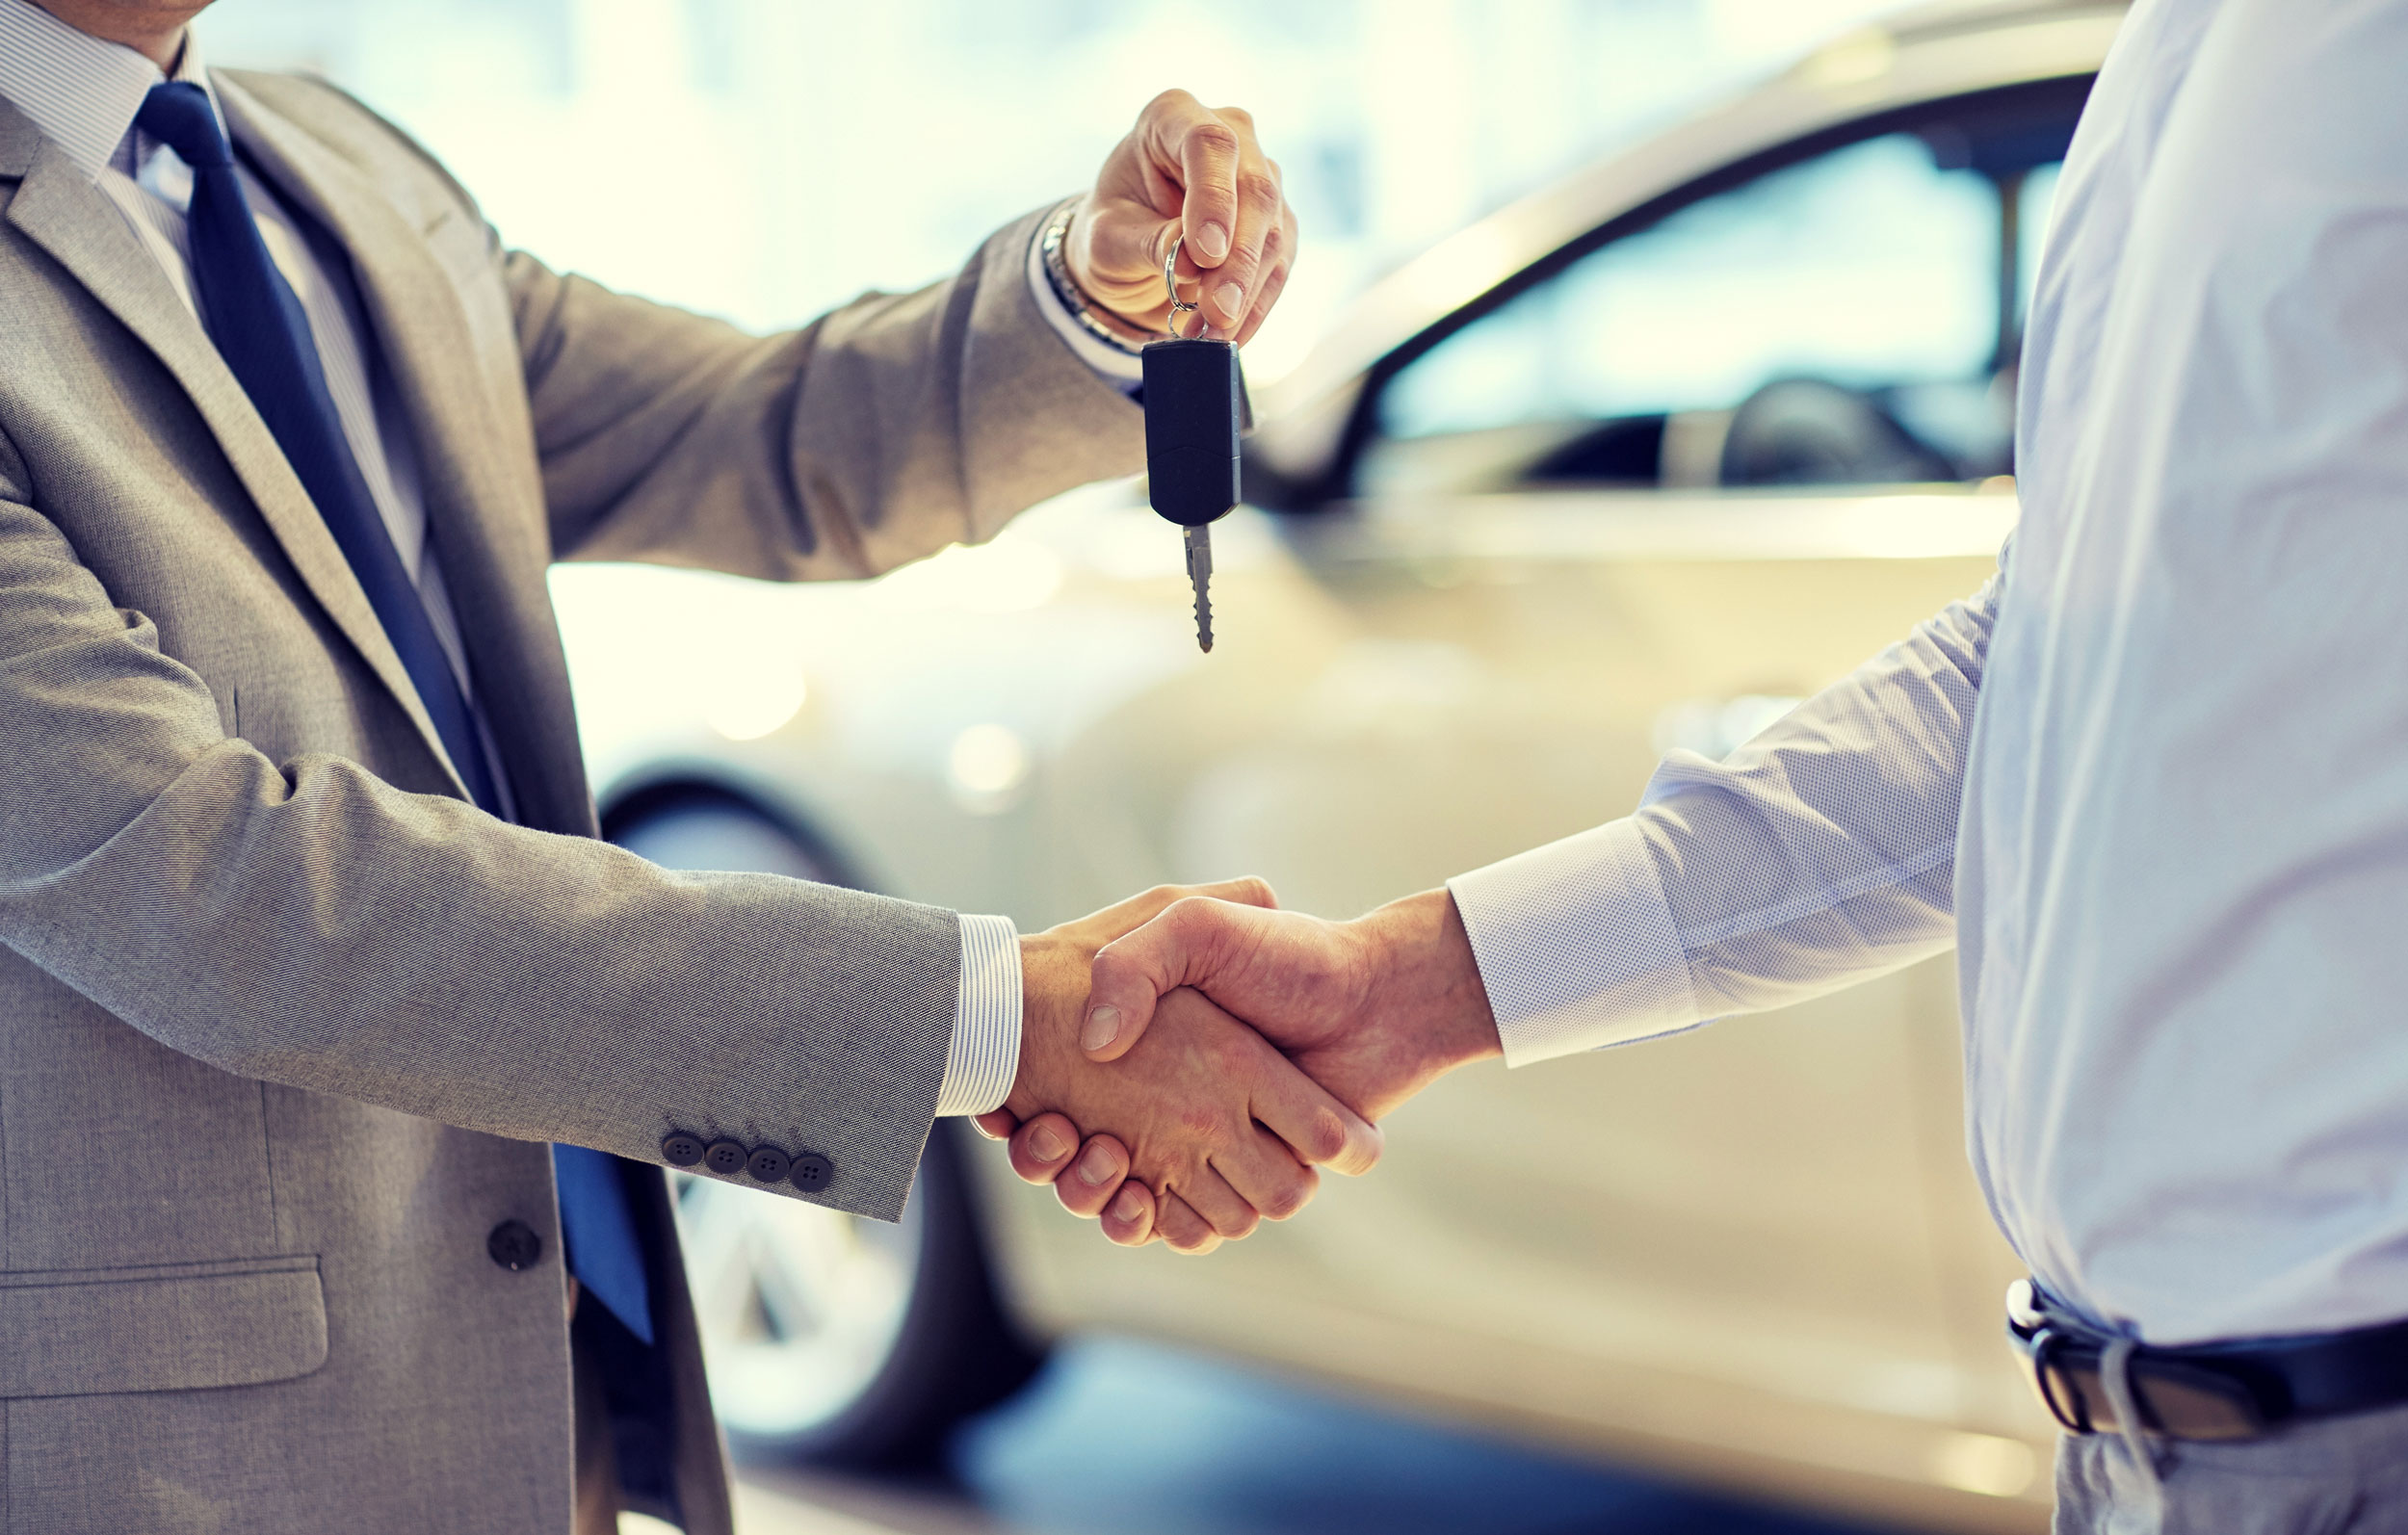 Domestic car sales fell 10.83 per cent to 1,60,306 units against 1,79,783 units in November 2018, according to data released by the Society of Indian Automobile Manufacturers (SIAM).